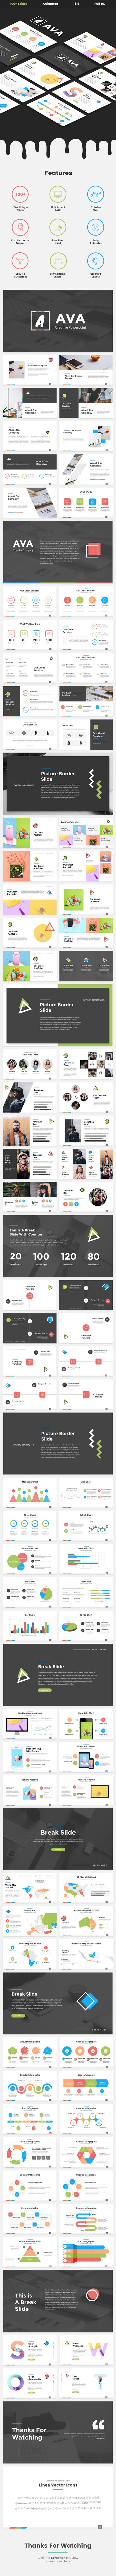 Ava - Creative Keynote Template - Creative Keynote Templates